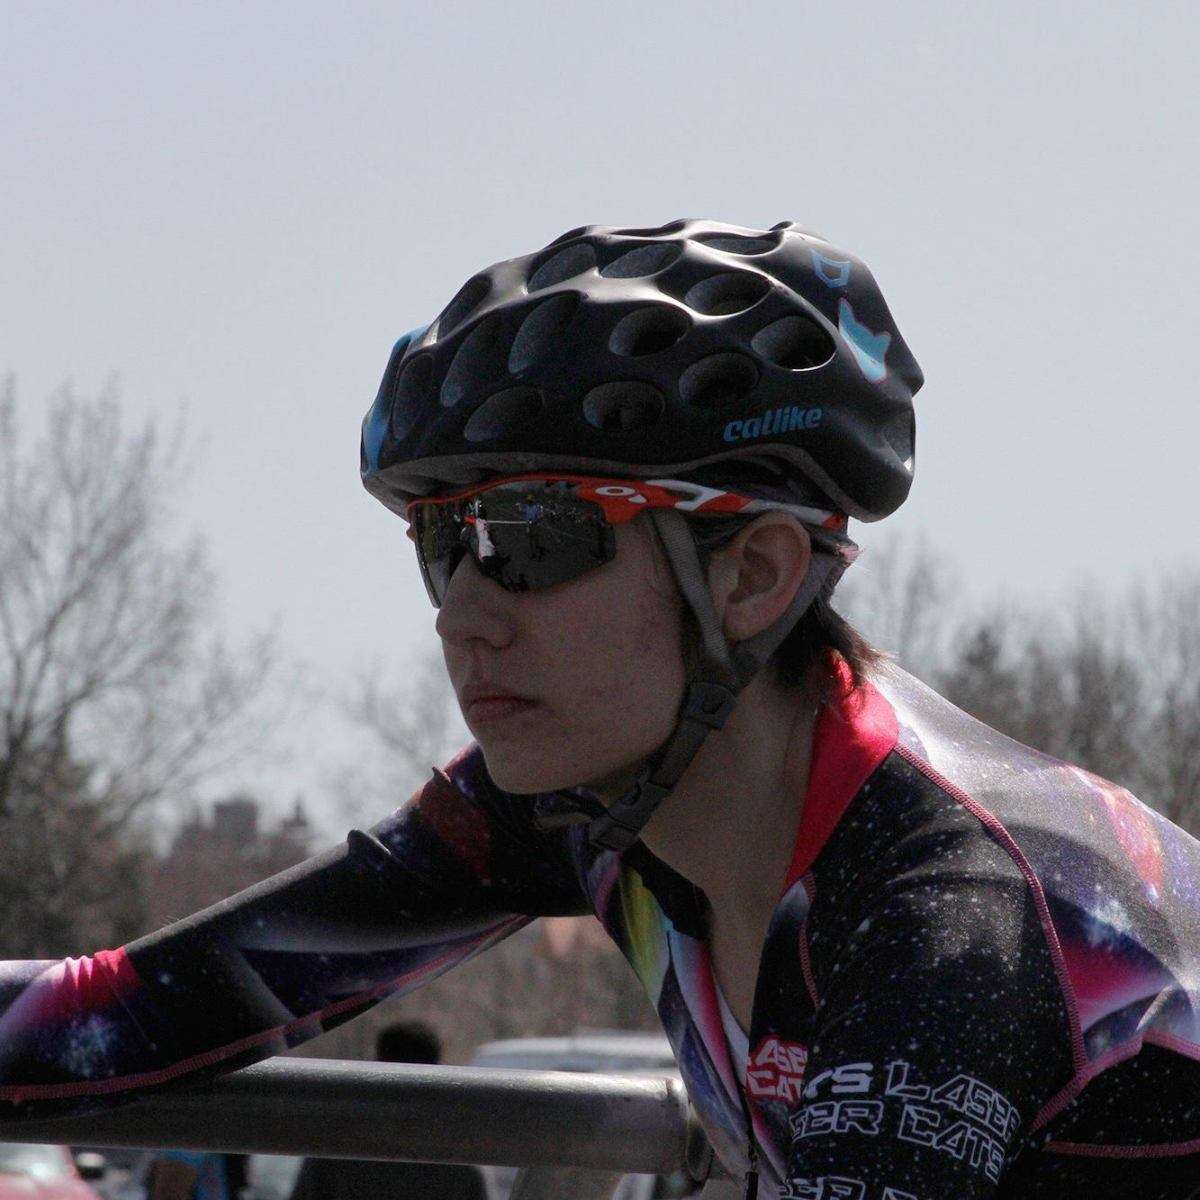 Woman racing on a velodrome